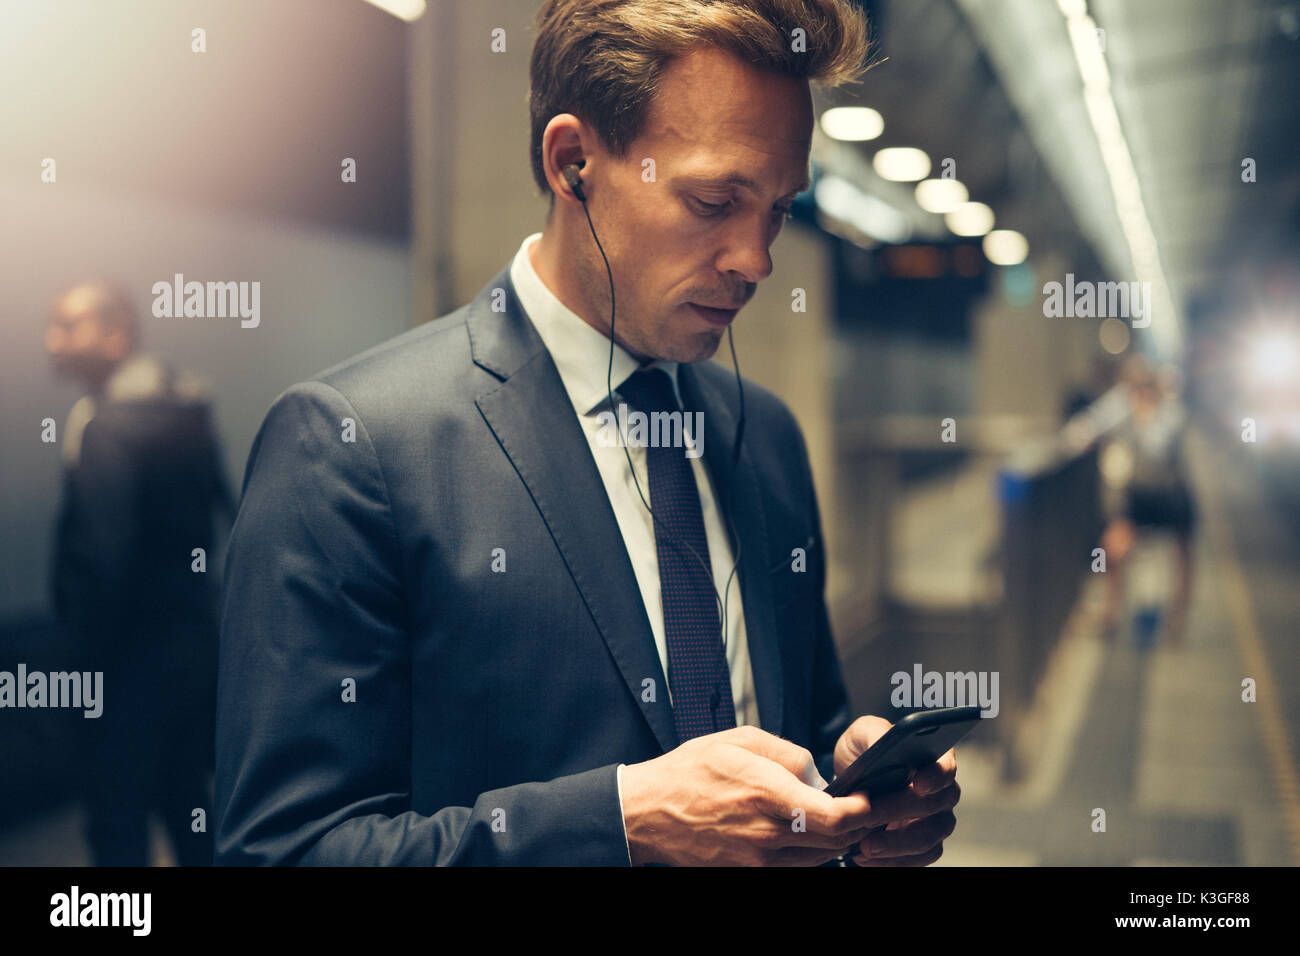 Young businessman wearing earphones and sending text messages on his cellphone while standing on a subway platform during his morning commute - Stock Image